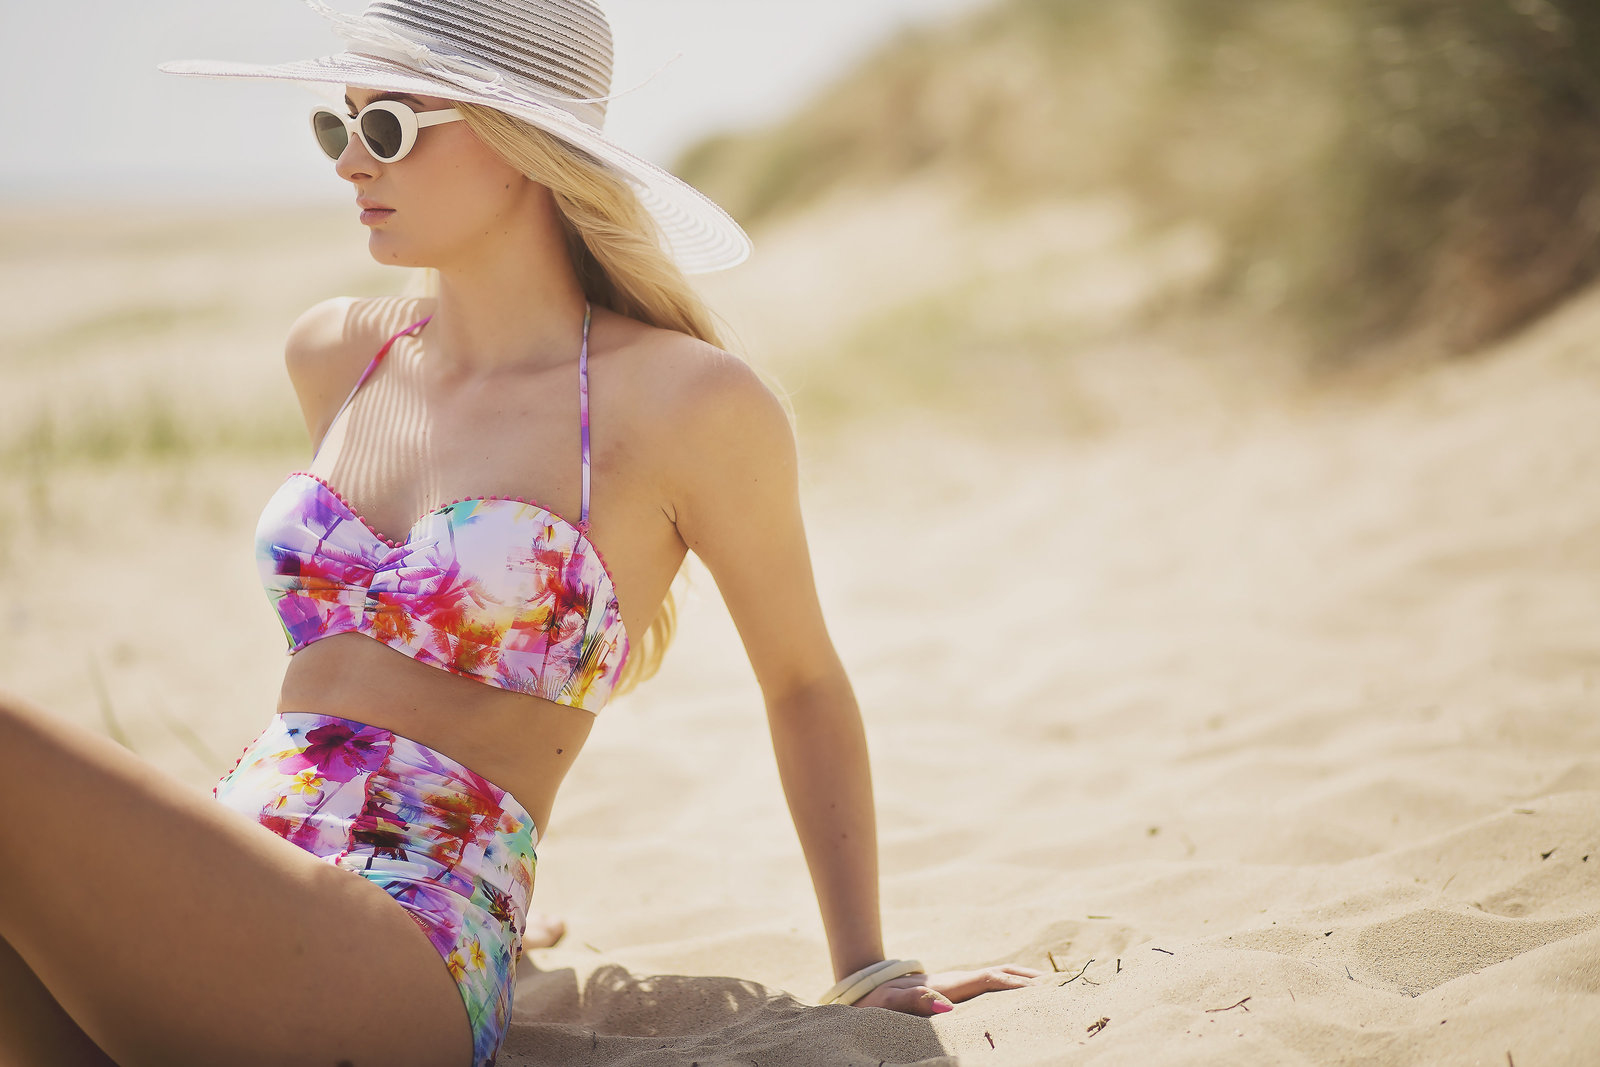 Model Eva Ruestyle wearing a floral bikini from proudlock and harry in Norwich. Photography by Jessica Elisze